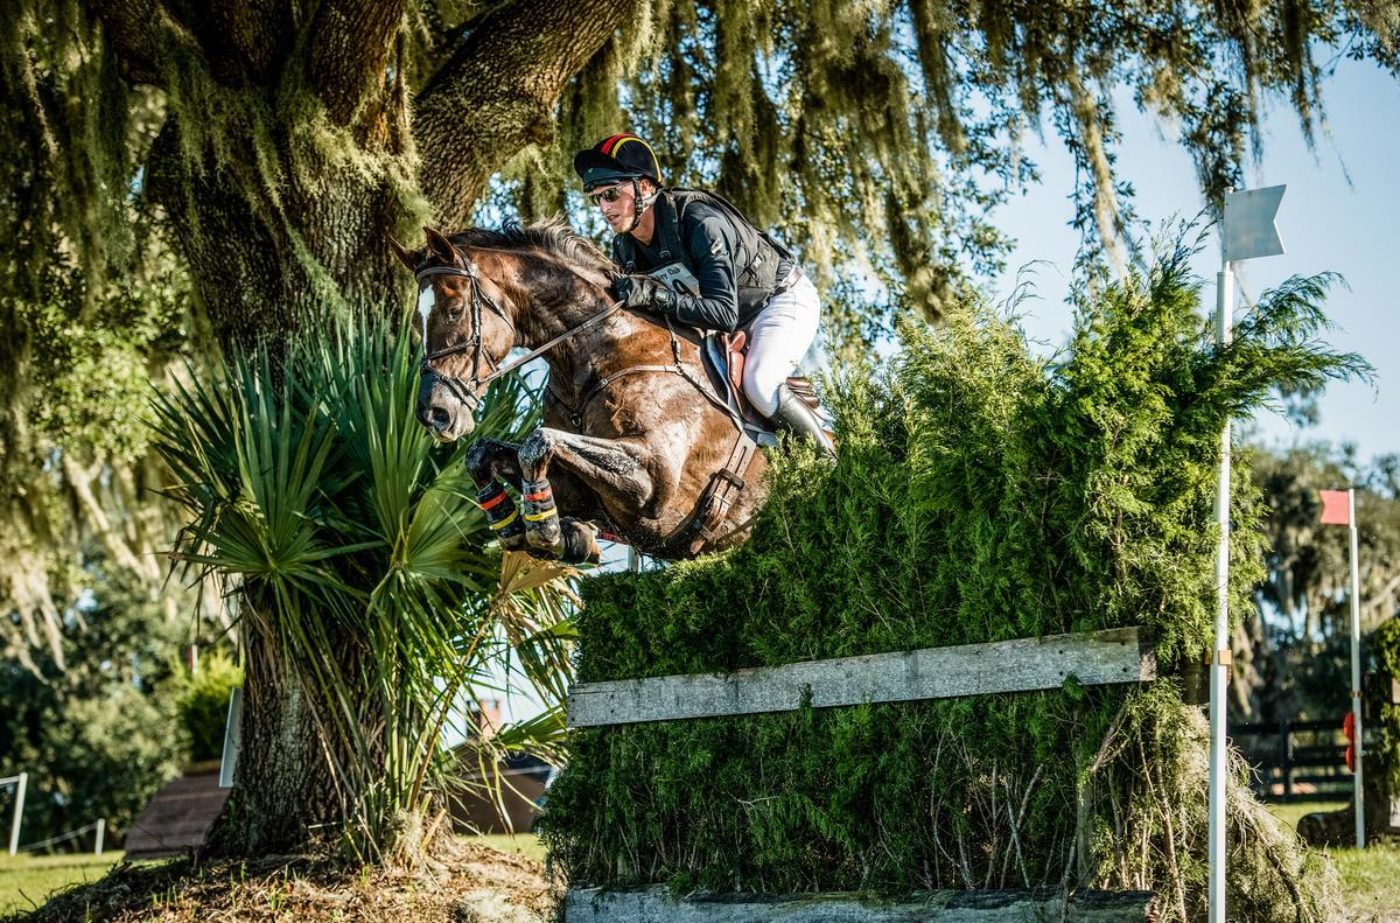 US Equestrian has announced the selected host venues for the 2020/2021 USEF CCI4*-L and CCI3*-L Eventing National Championships.